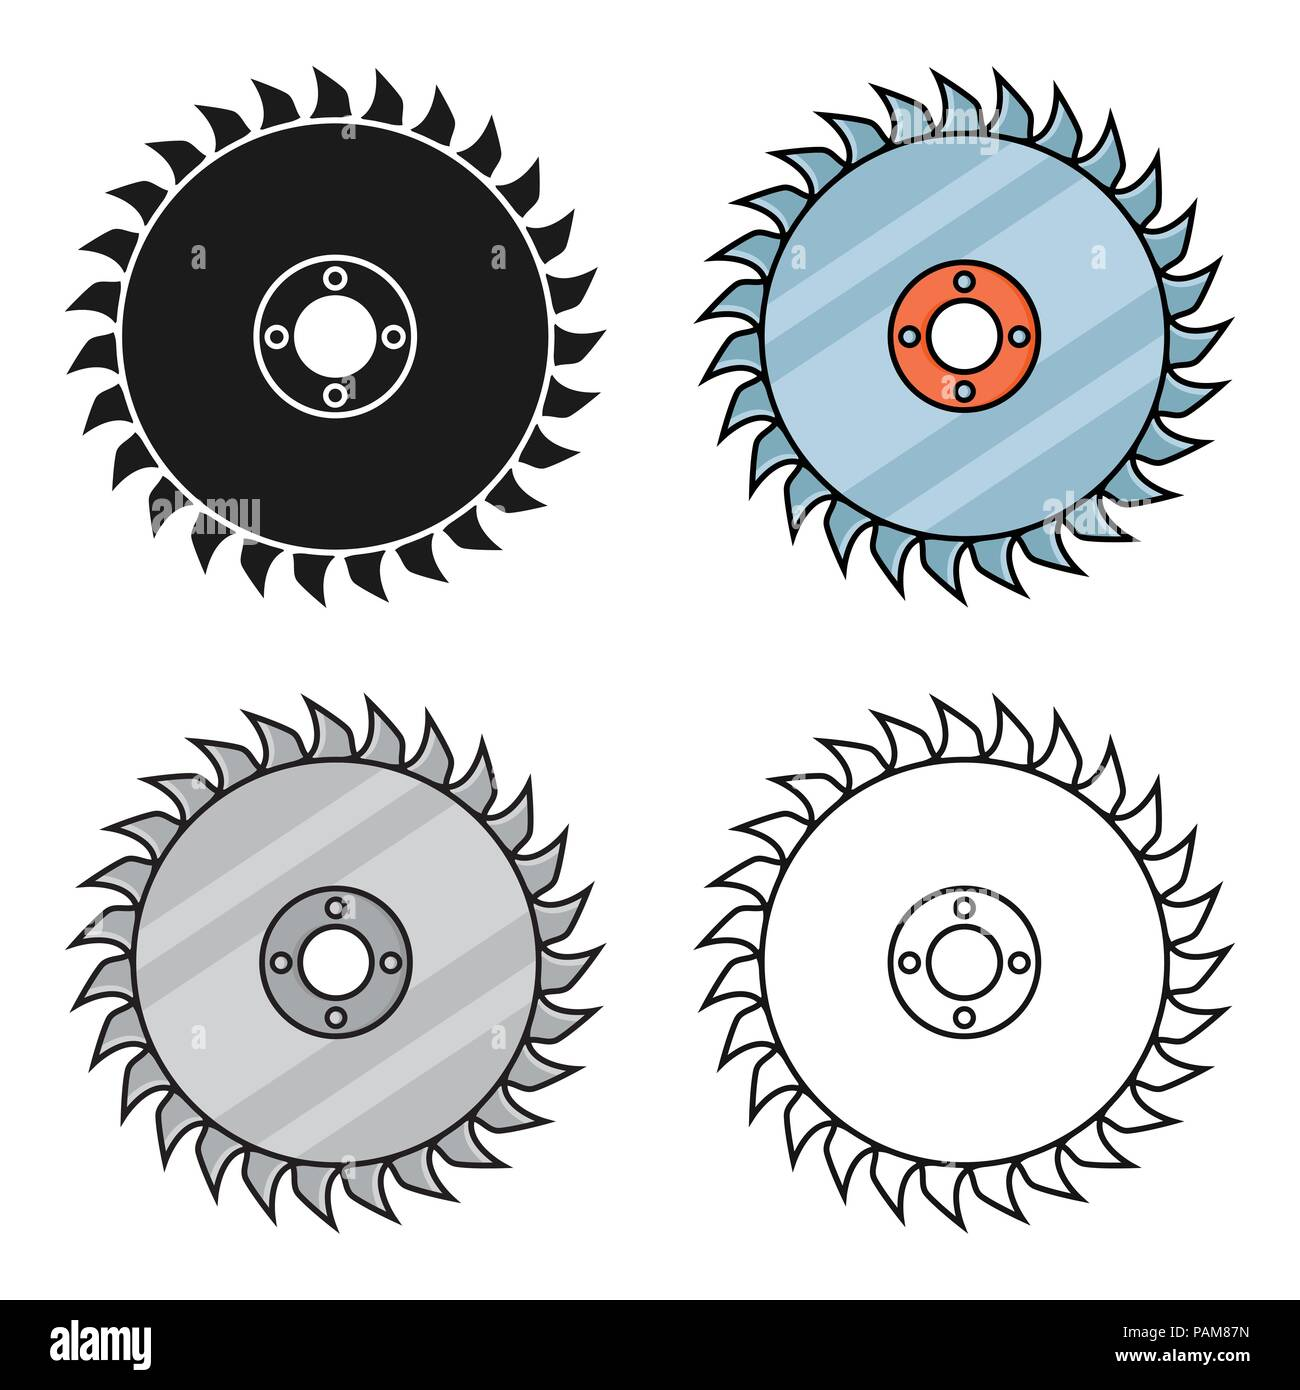 Saw disc icon in cartoon style isolated on white background. Sawmill and timber symbol vector illustration. - Stock Image